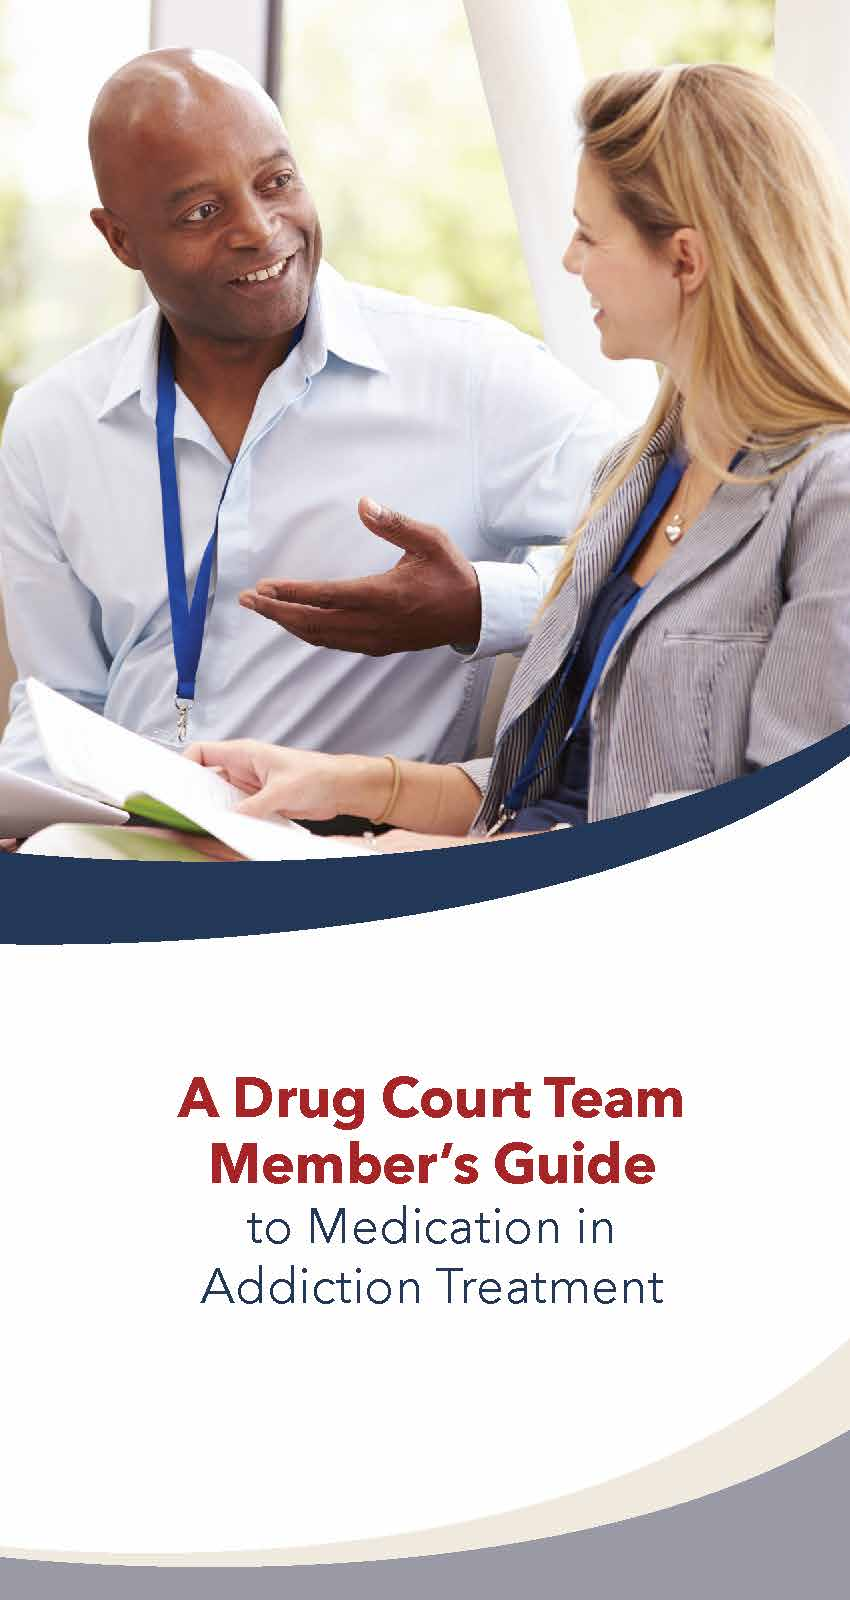 A Drug Court Team Member's Guide to Medication in Addiction Treatment